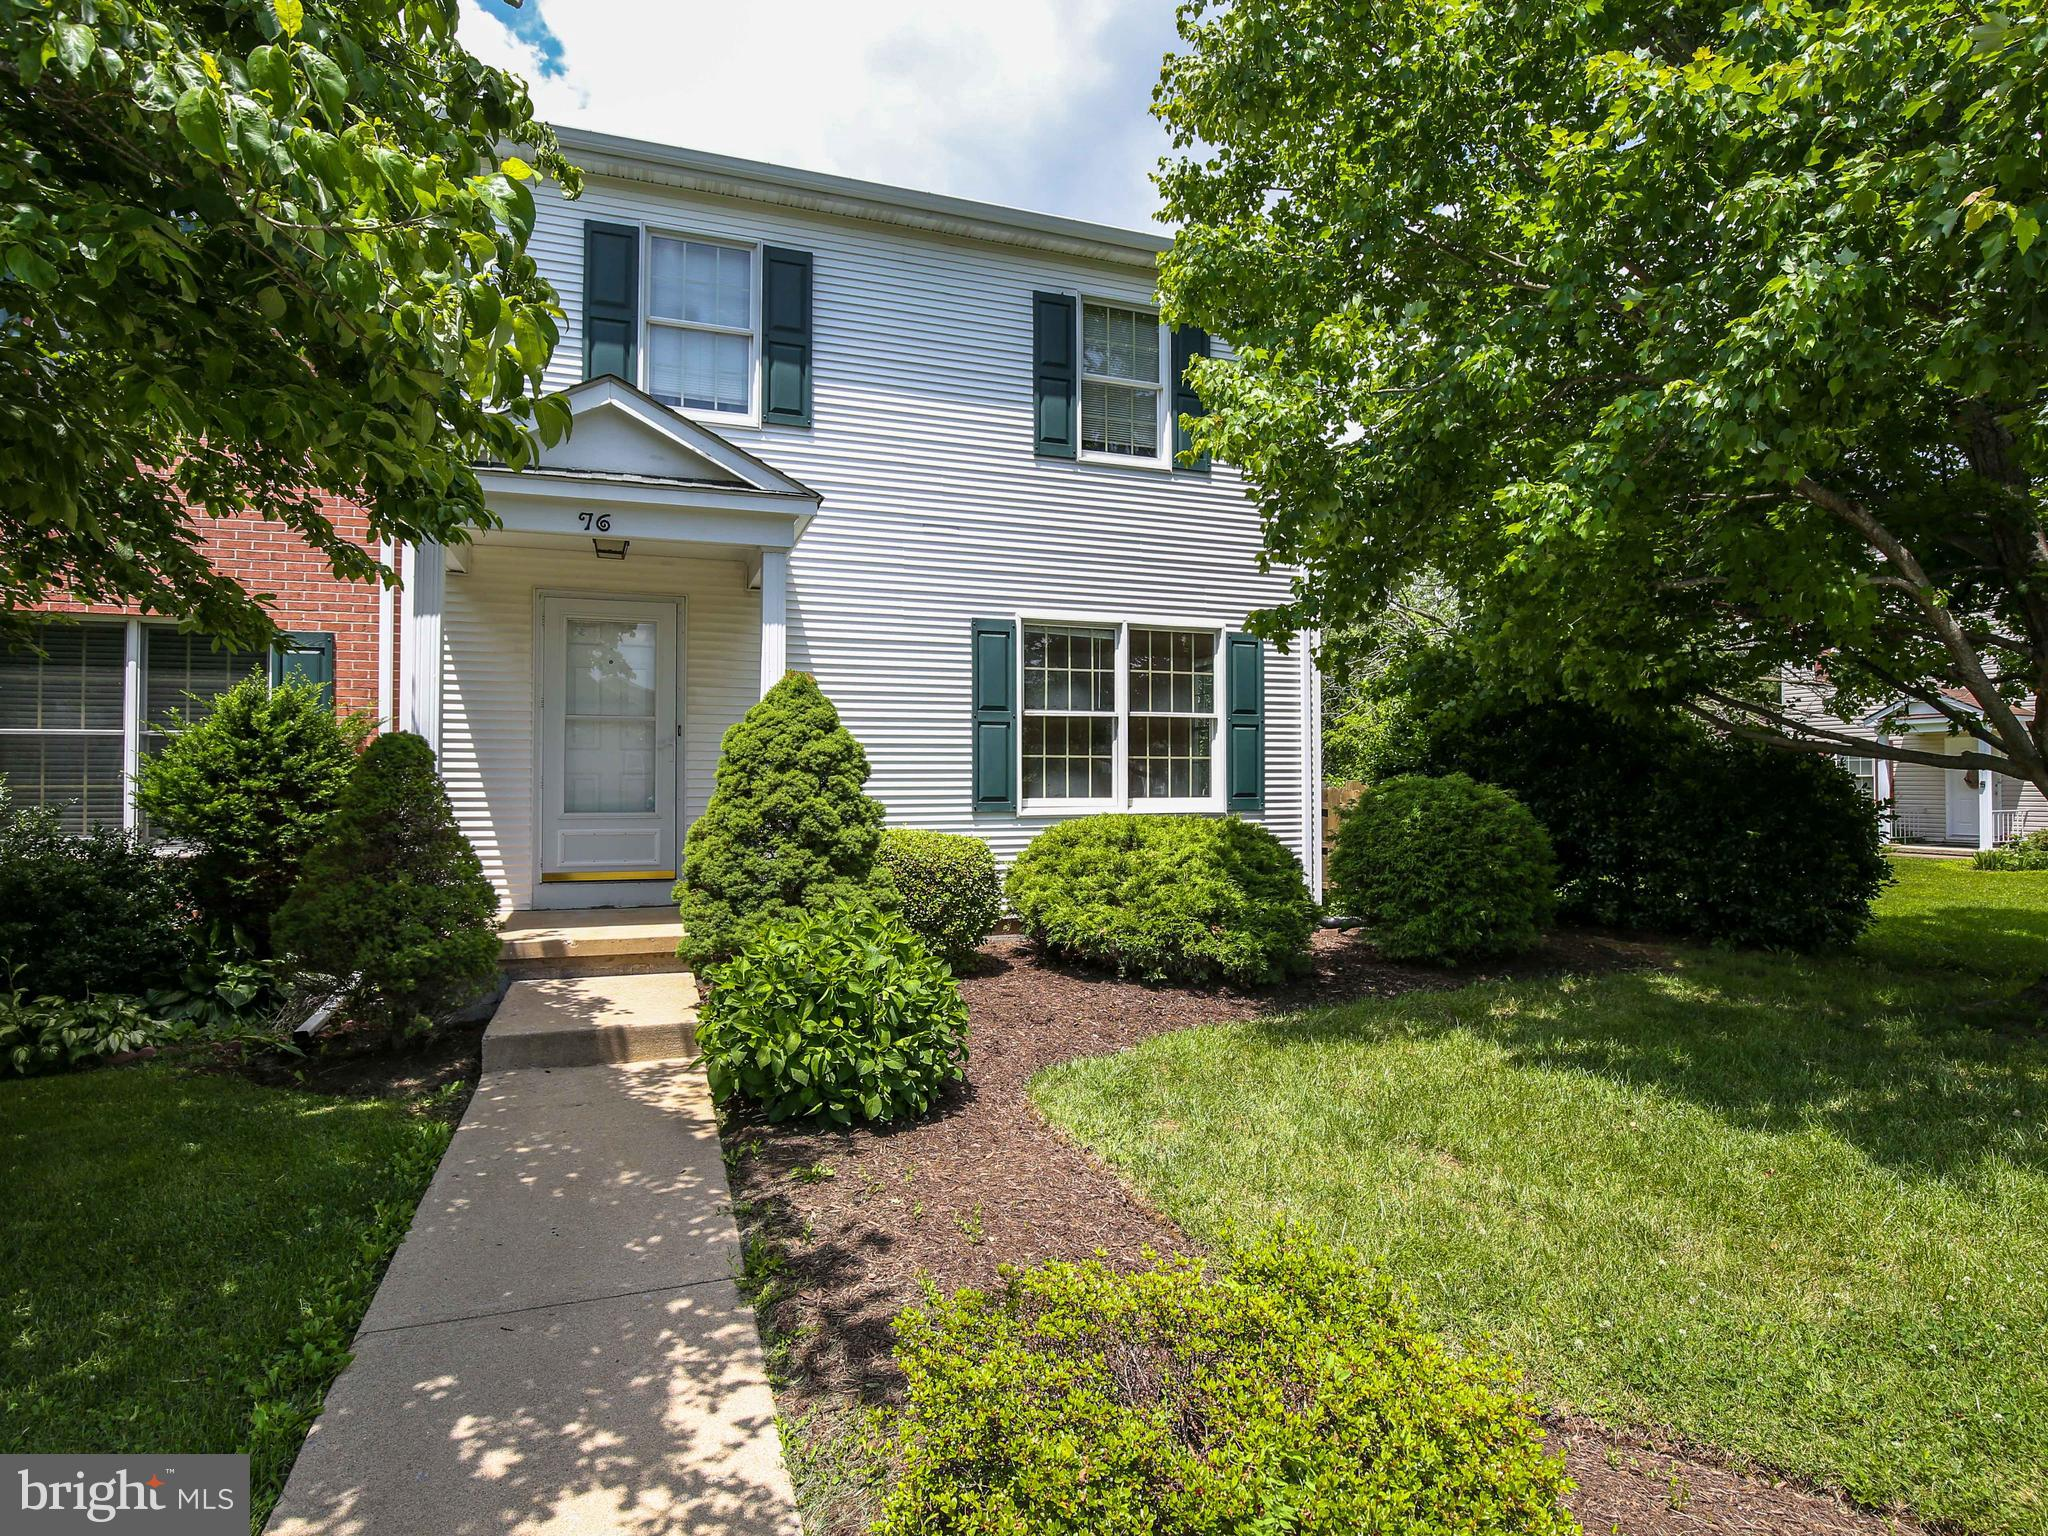 Own your own home!  This three bedroom, 1.5 bath end unit townhome is situated in the sought after T